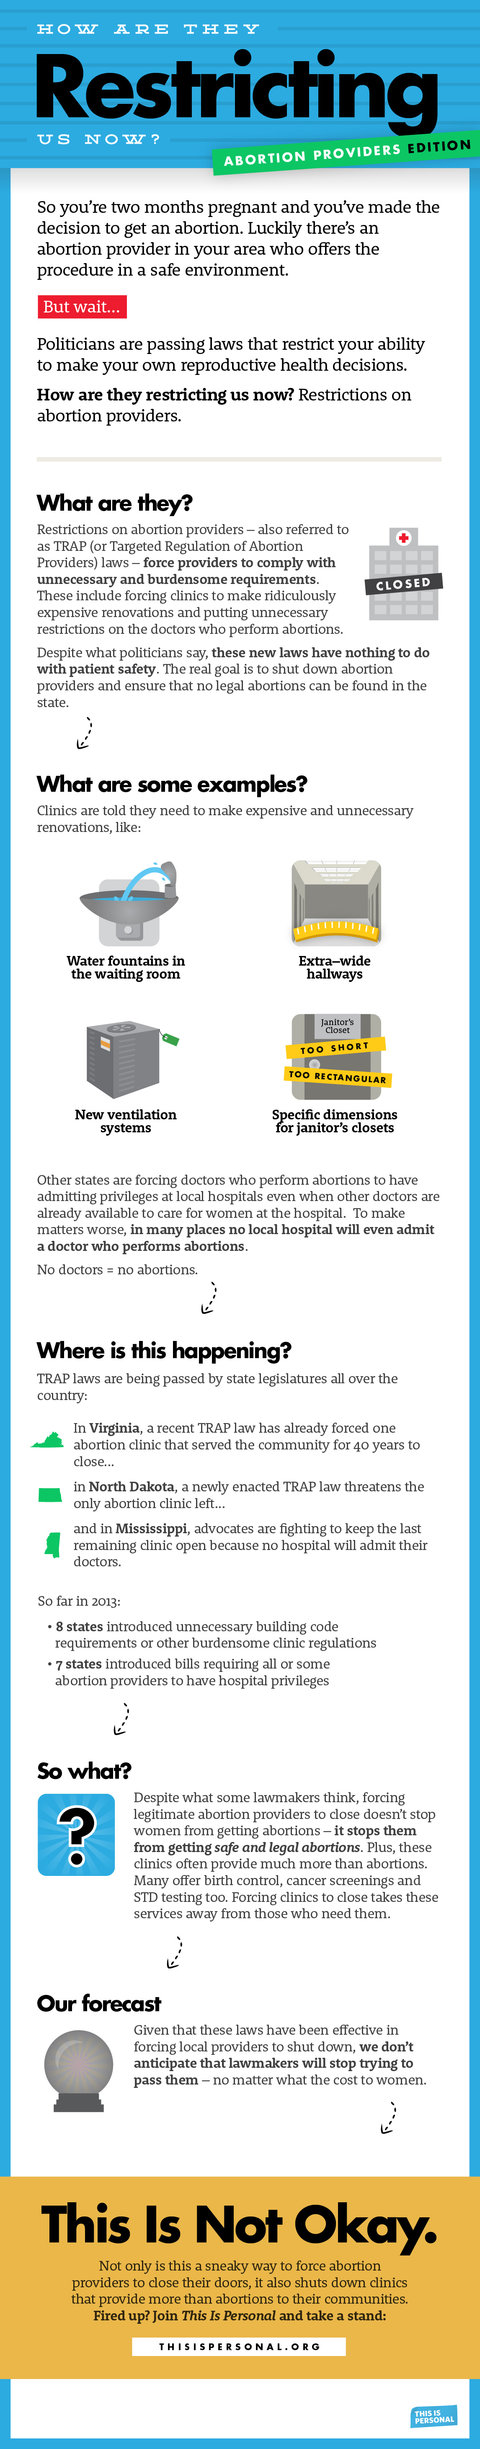 infographic - trap laws (image: courtesy this is personal)